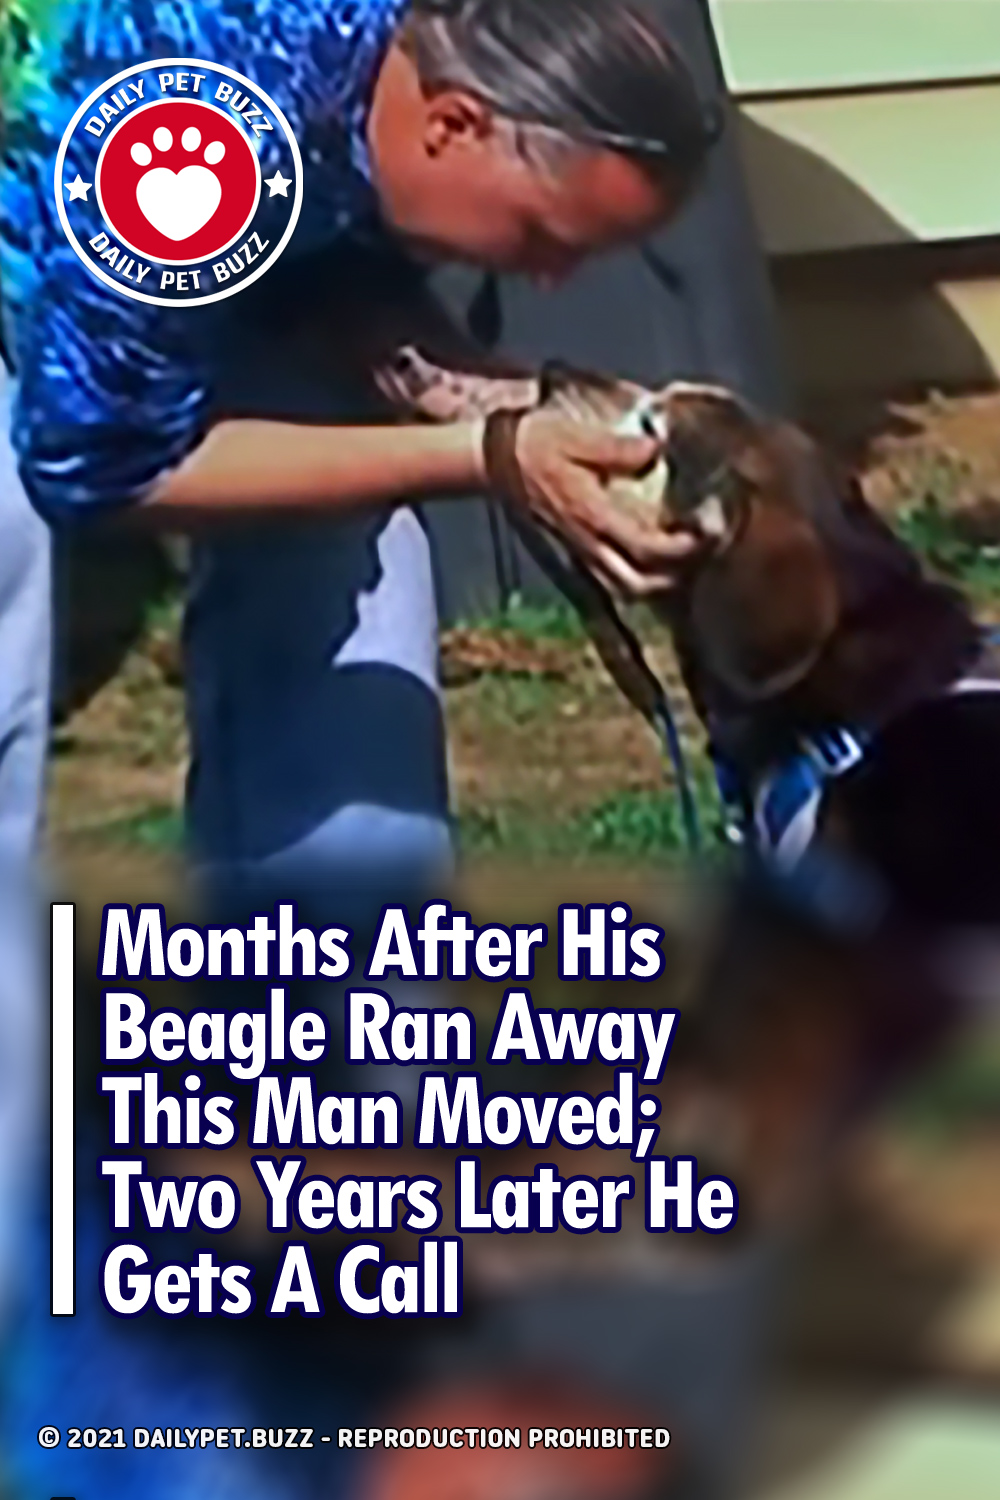 Months After His Beagle Ran Away This Man Moved; Two Years Later He Gets A Call